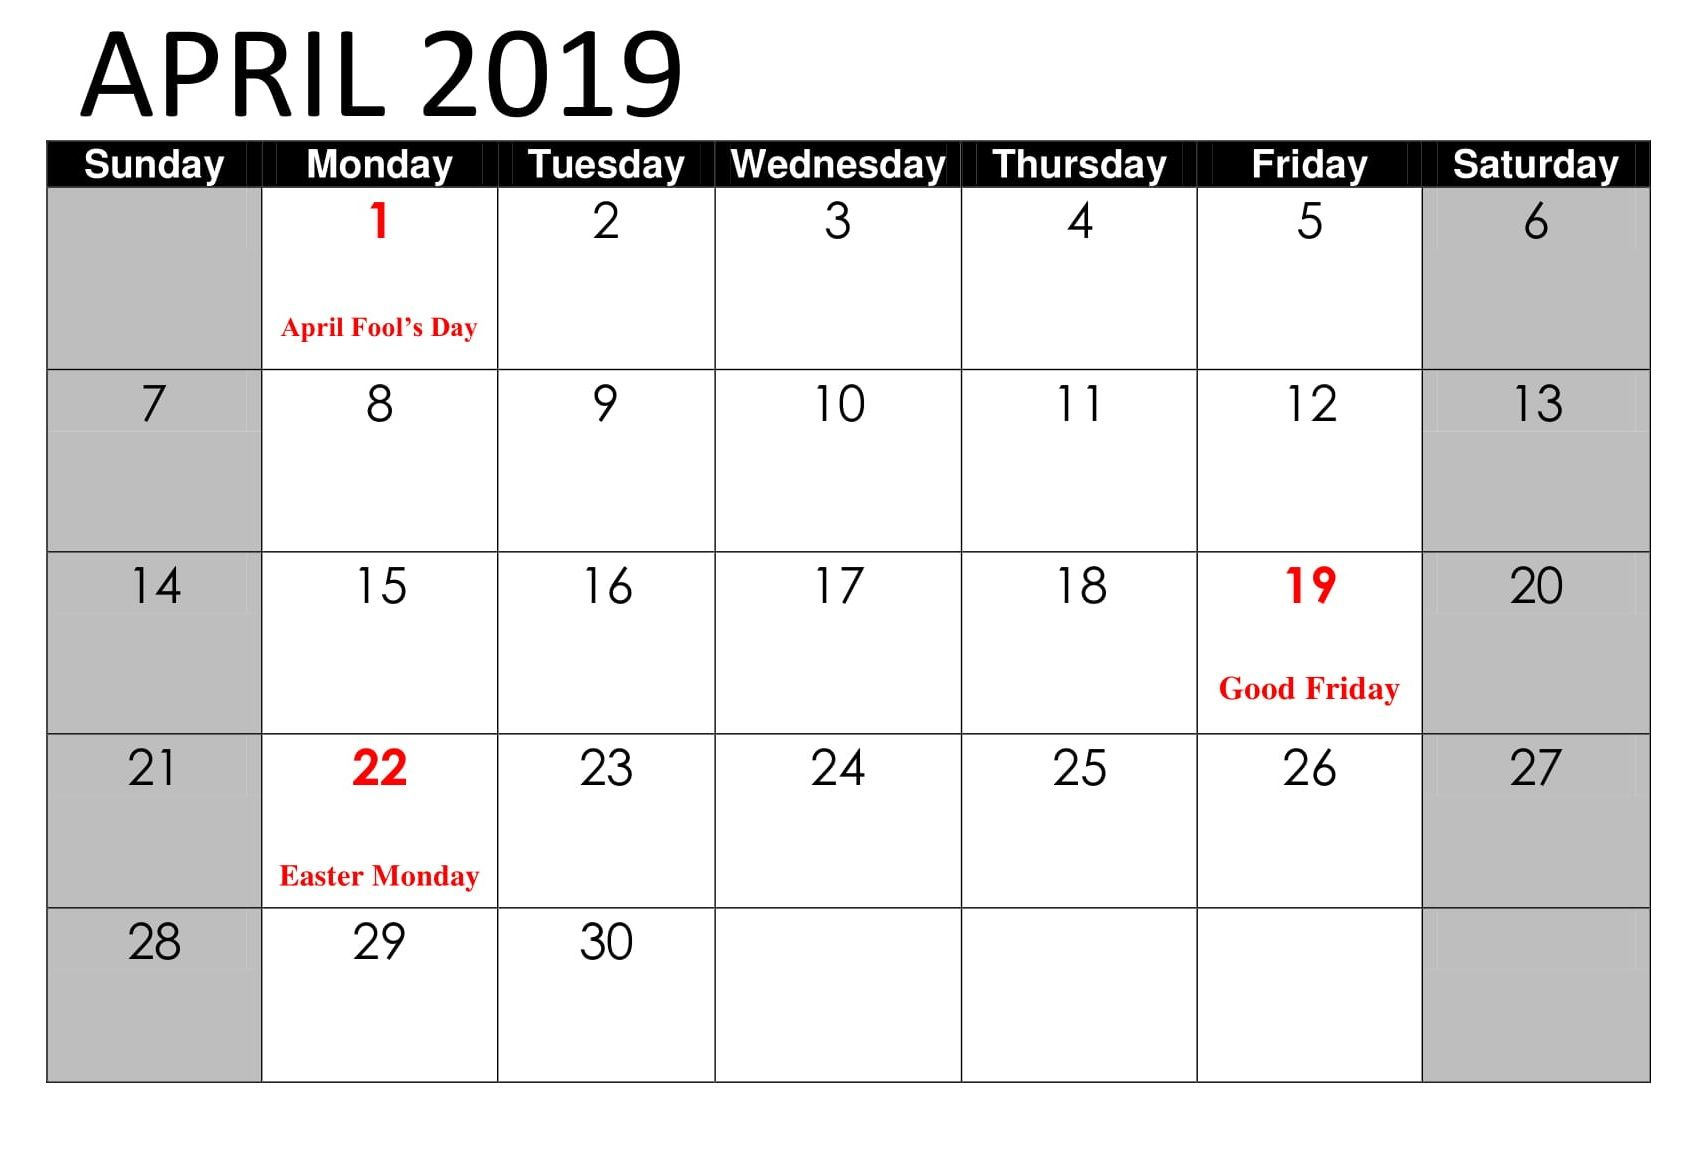 April 2019 Calendar With Federal Holidays Printable